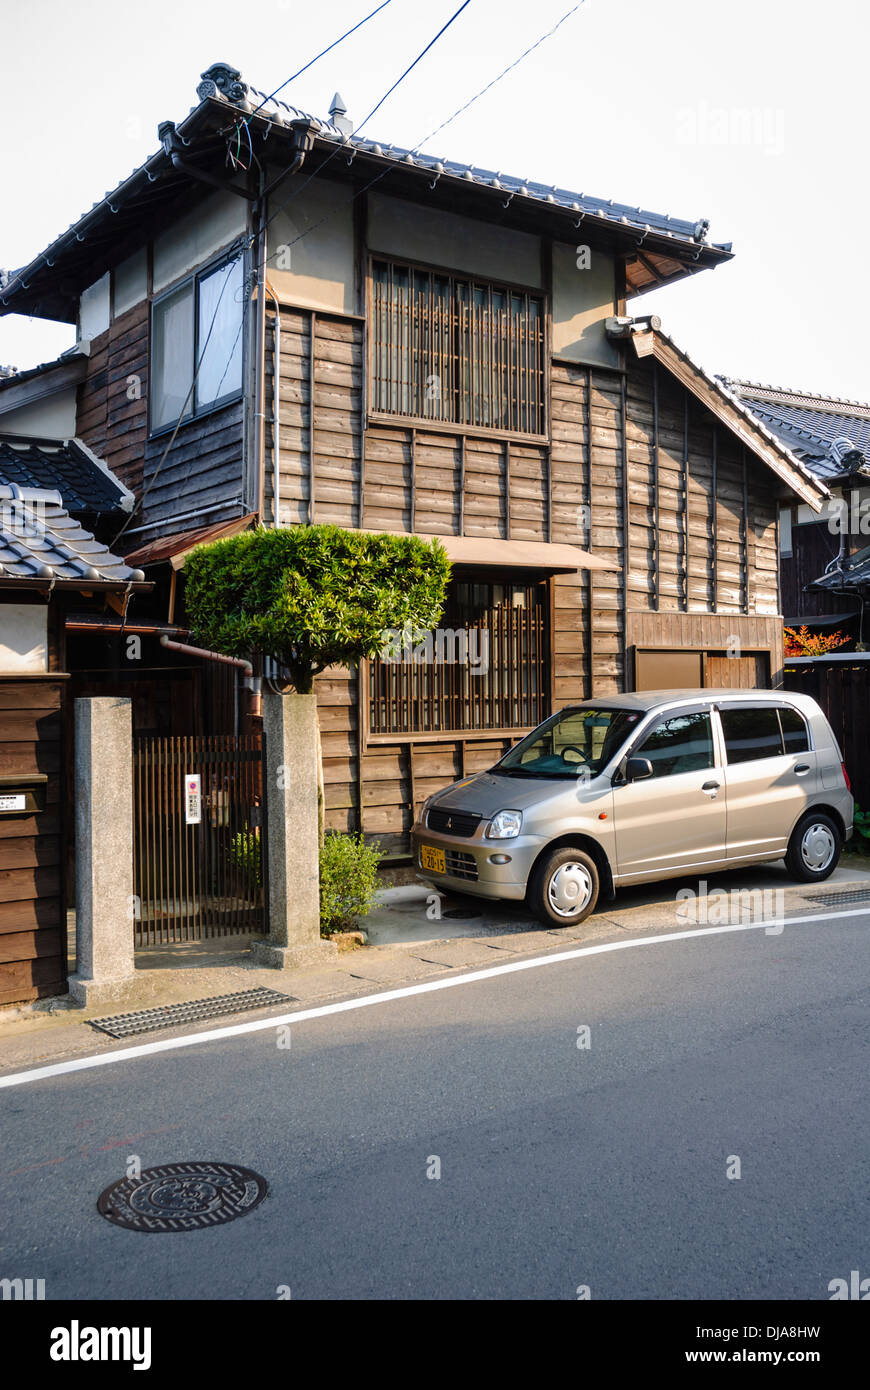 Traditional Compact Japanese Home Wooden House In Japan With Very Stock Photo Alamy